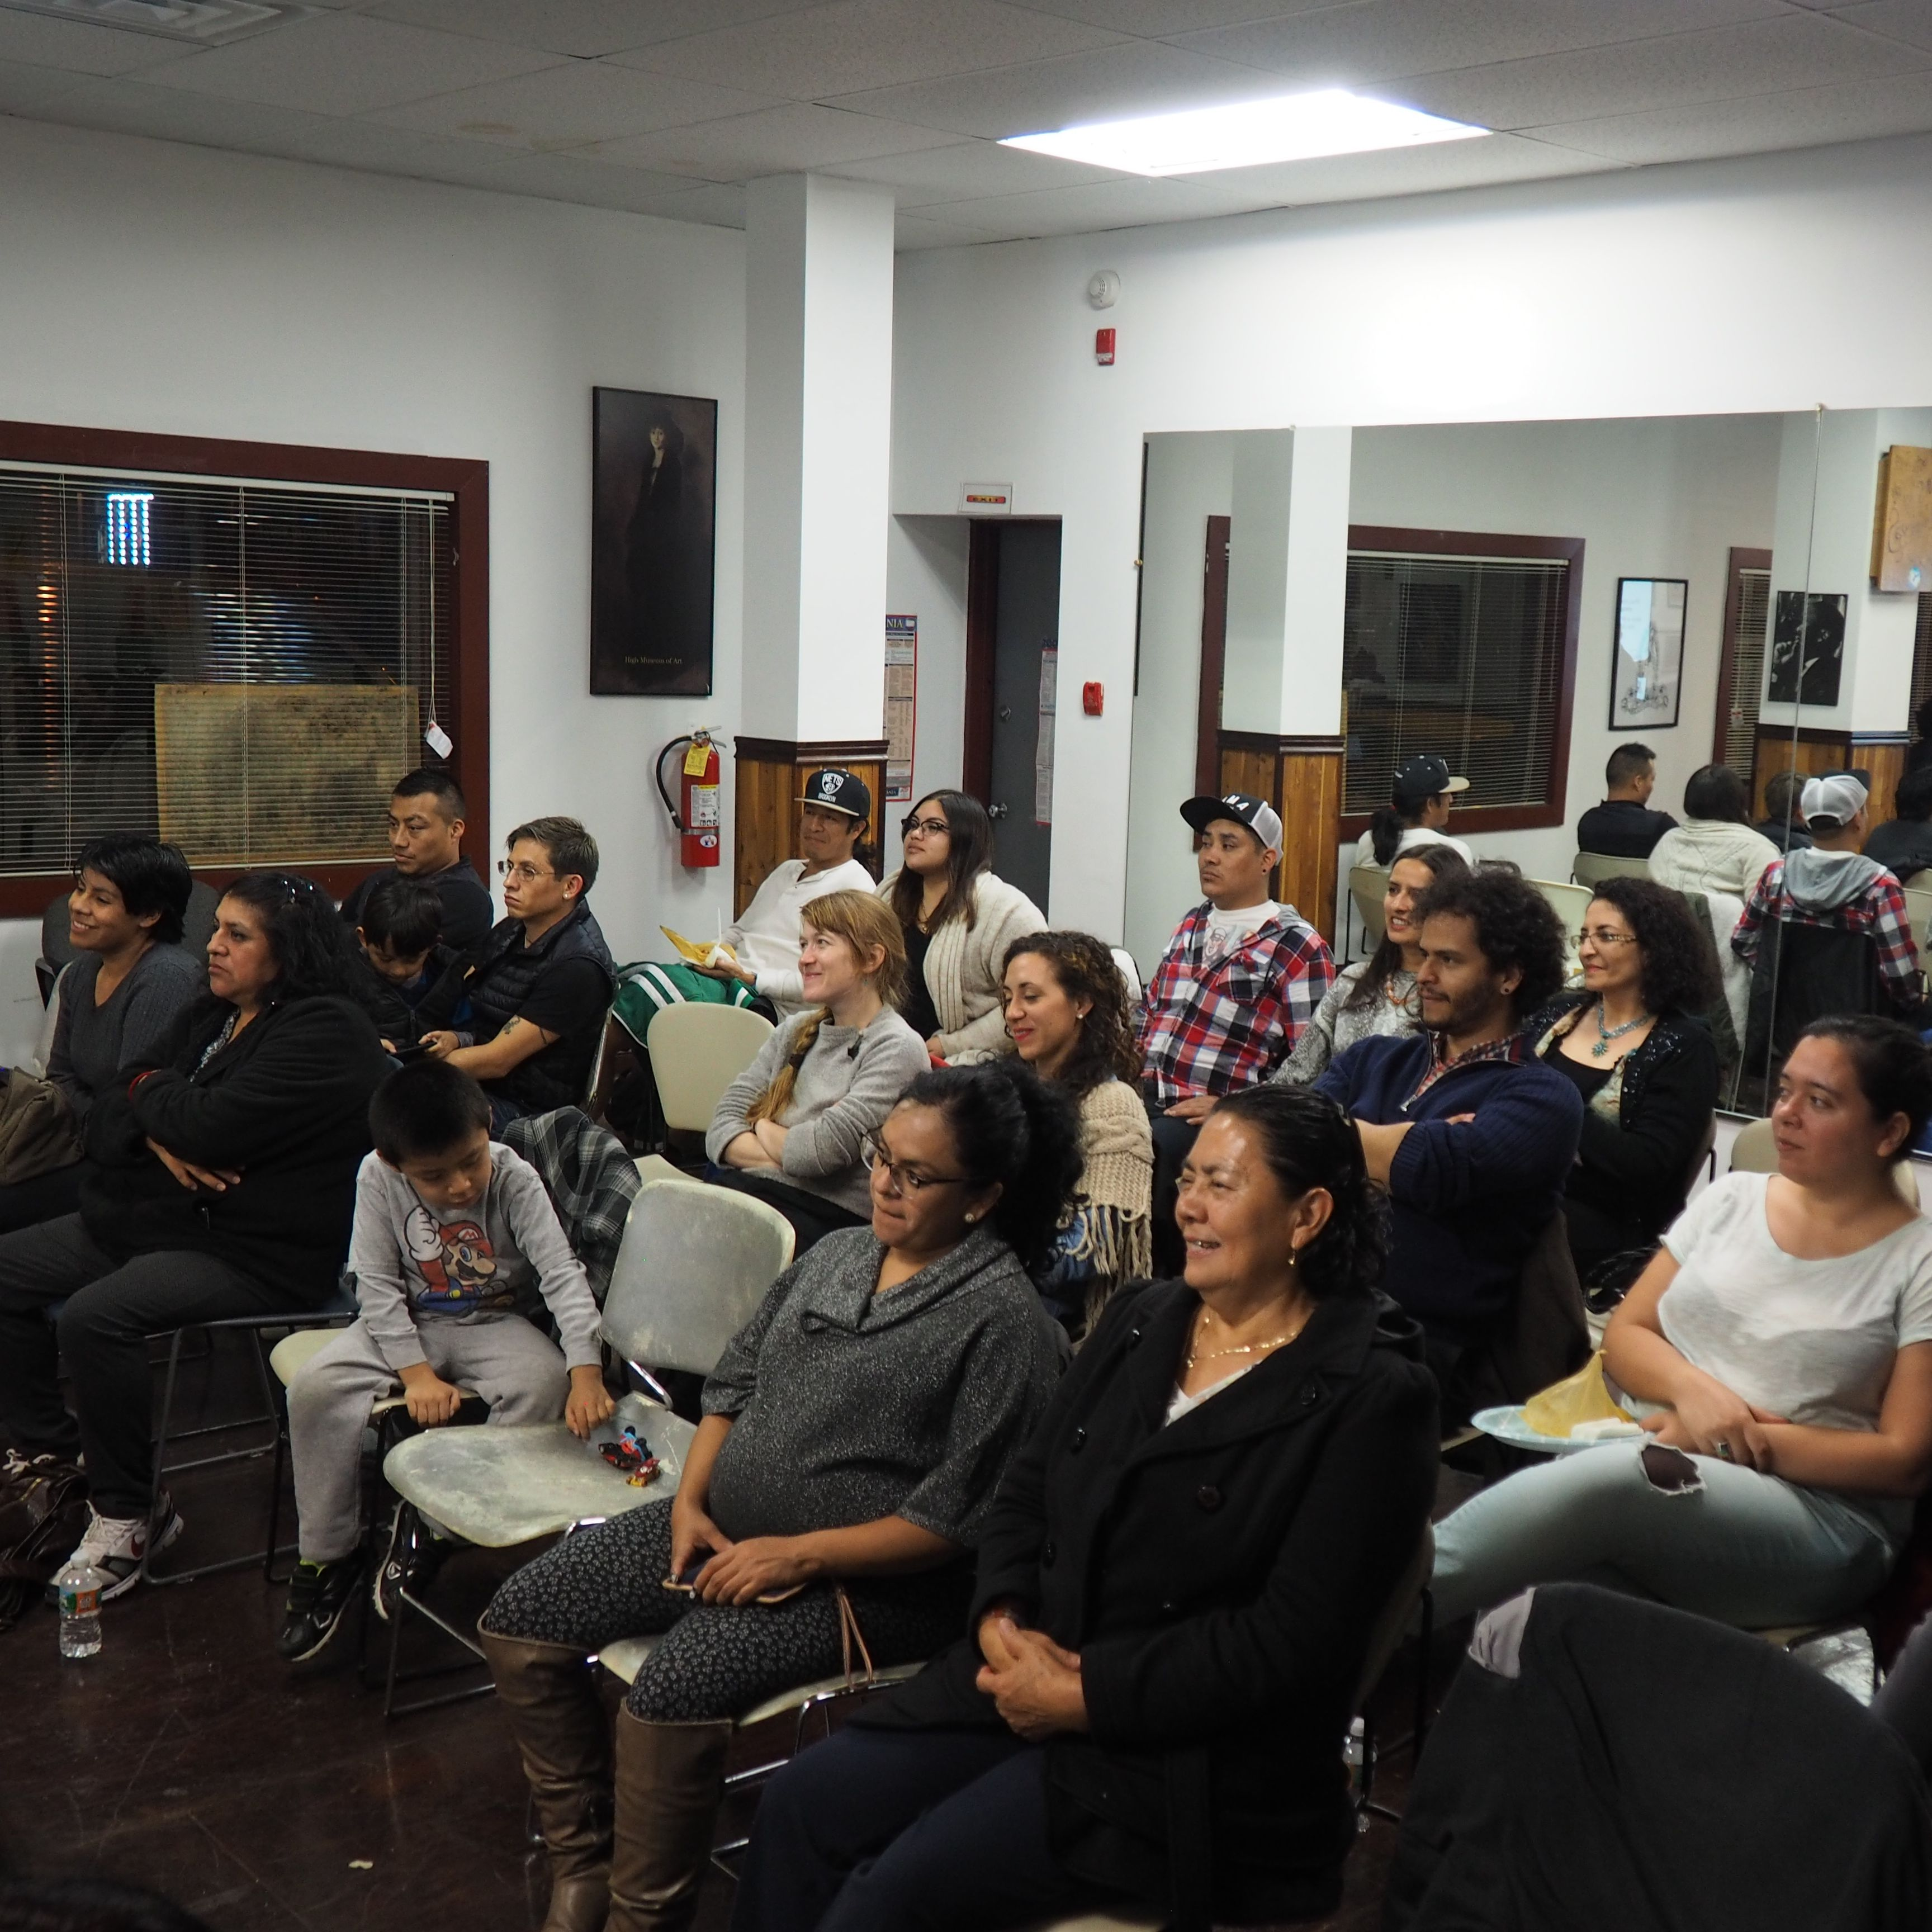 Parrado and colleagues presented their findings to the community in early November